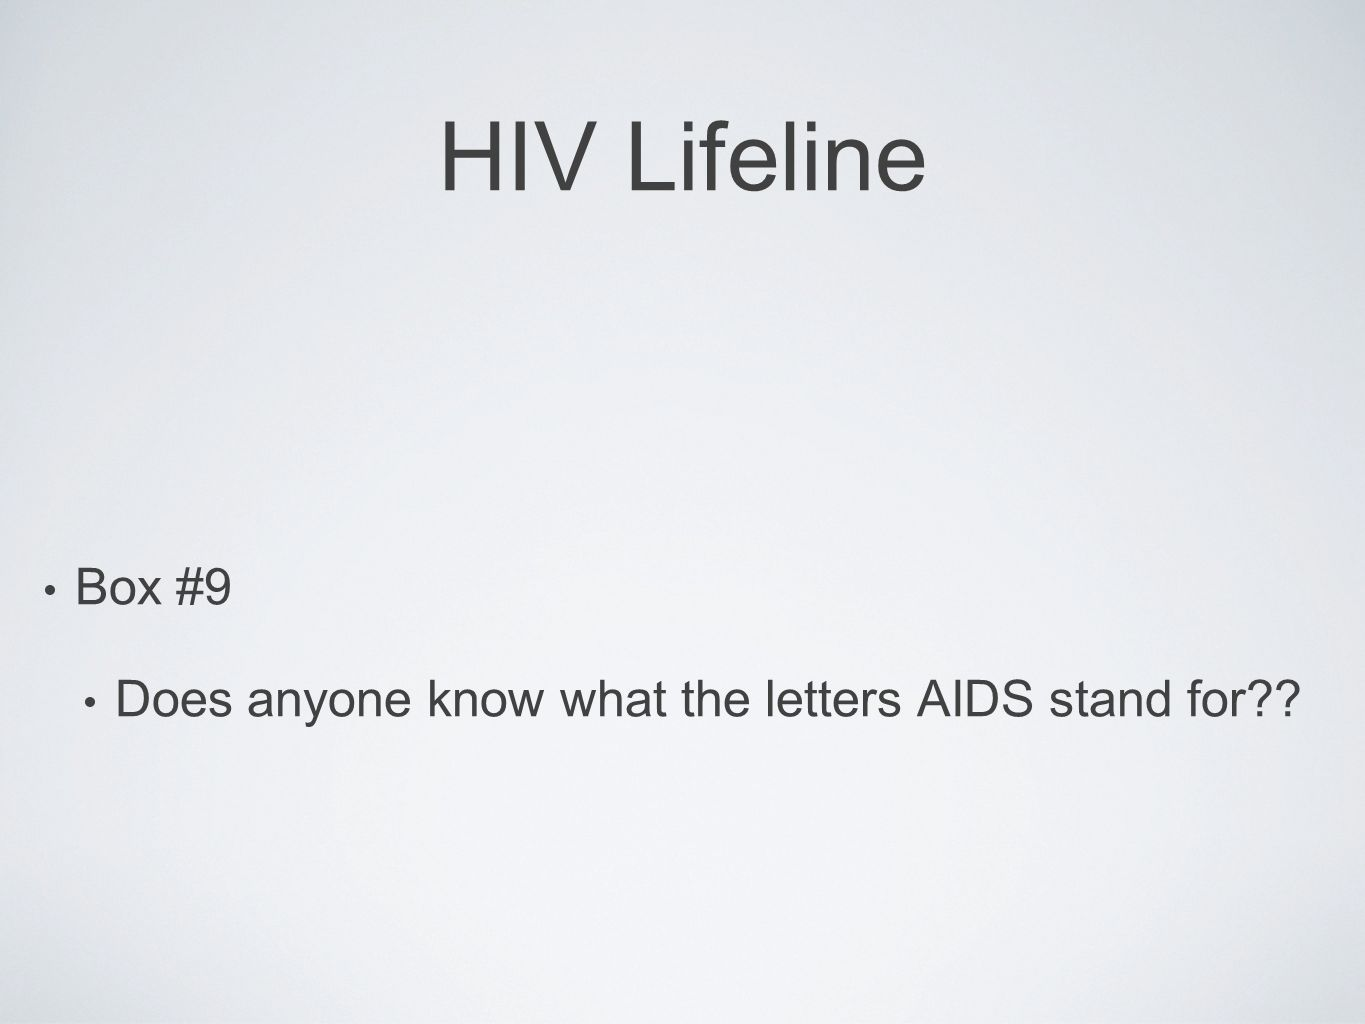 HIV Lifeline Box #9 Does anyone know what the letters AIDS stand for